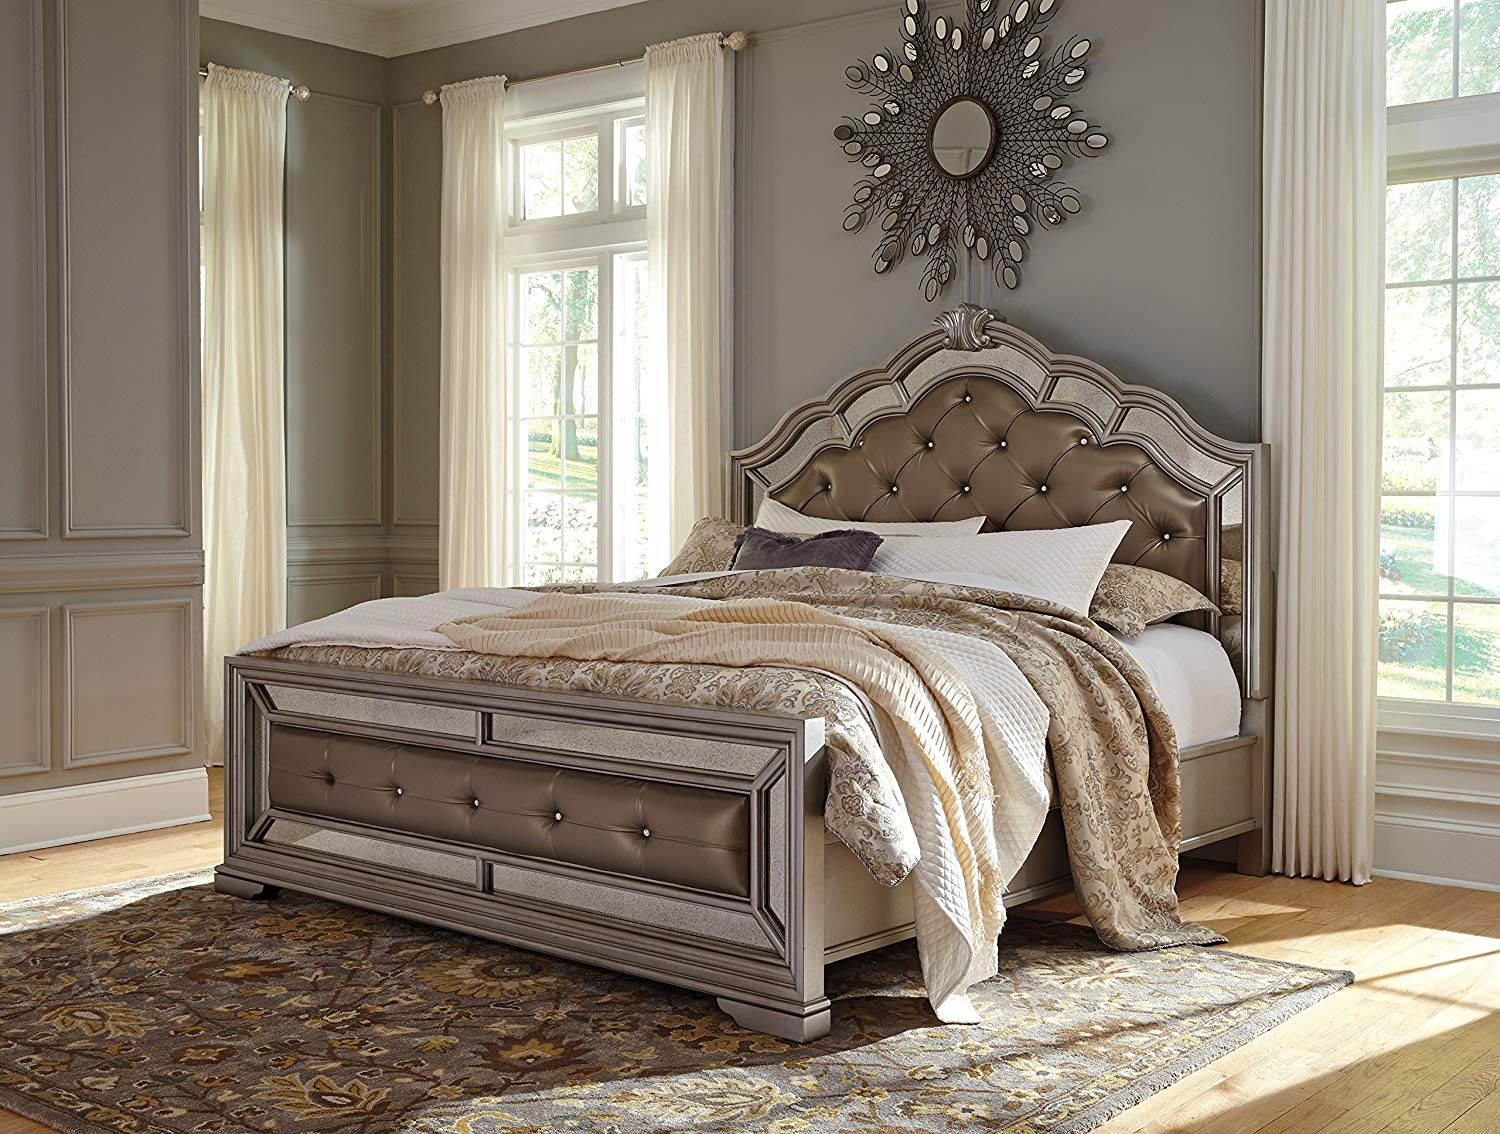 Silver Bedroom Set with king size bed